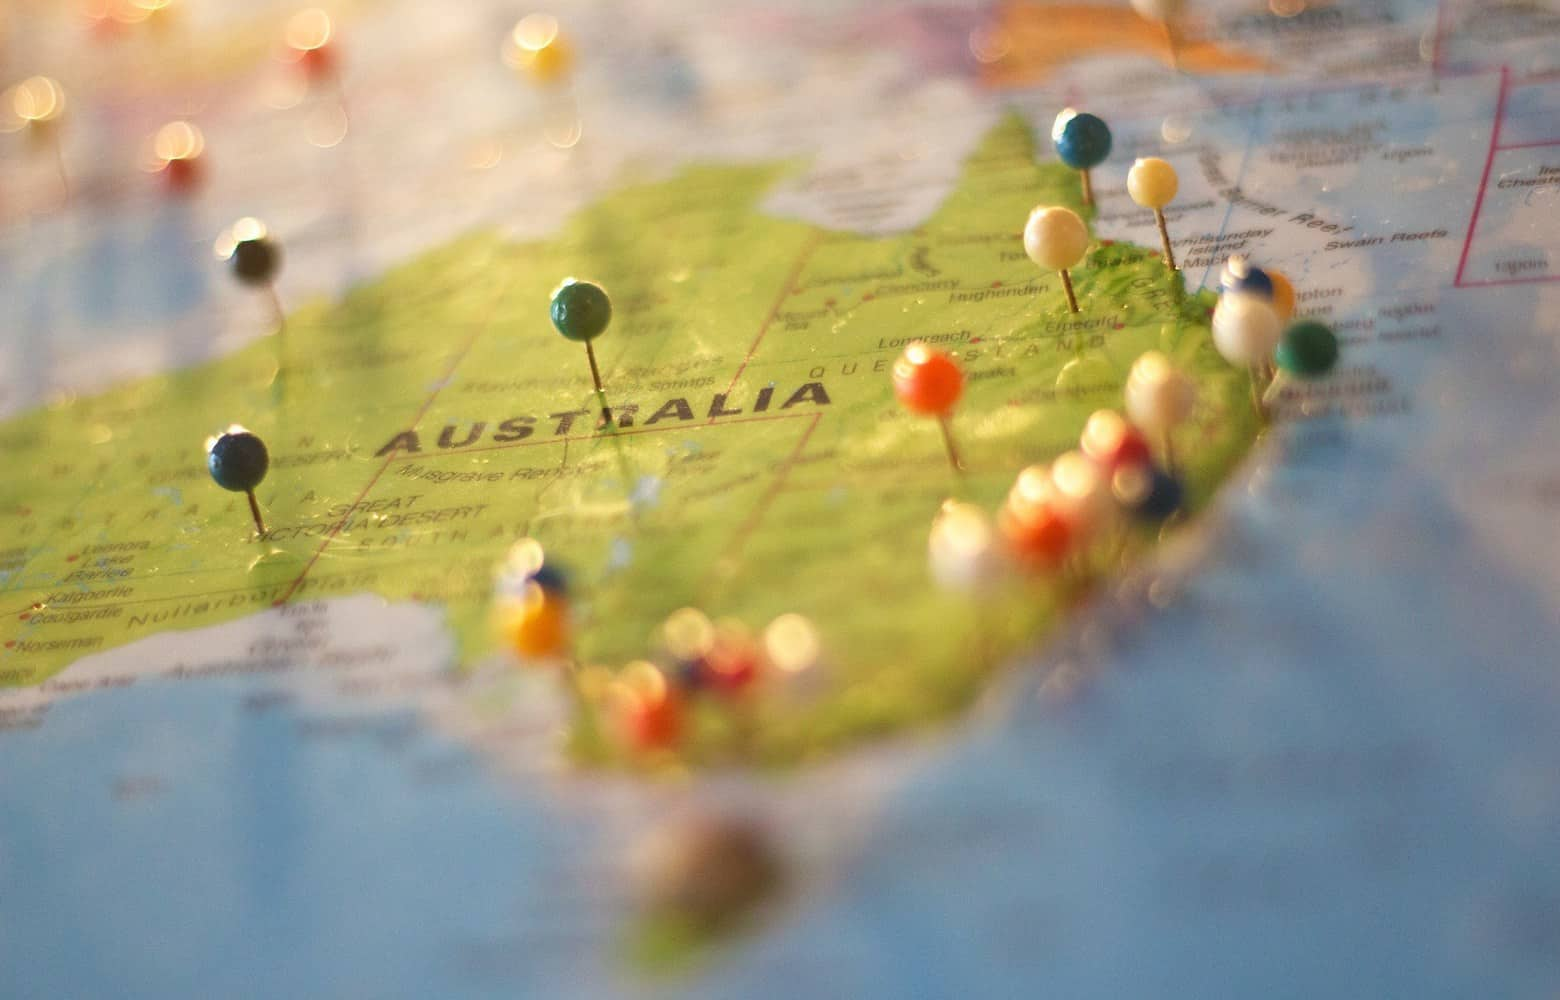 Part of a world map showing Australia with pins.